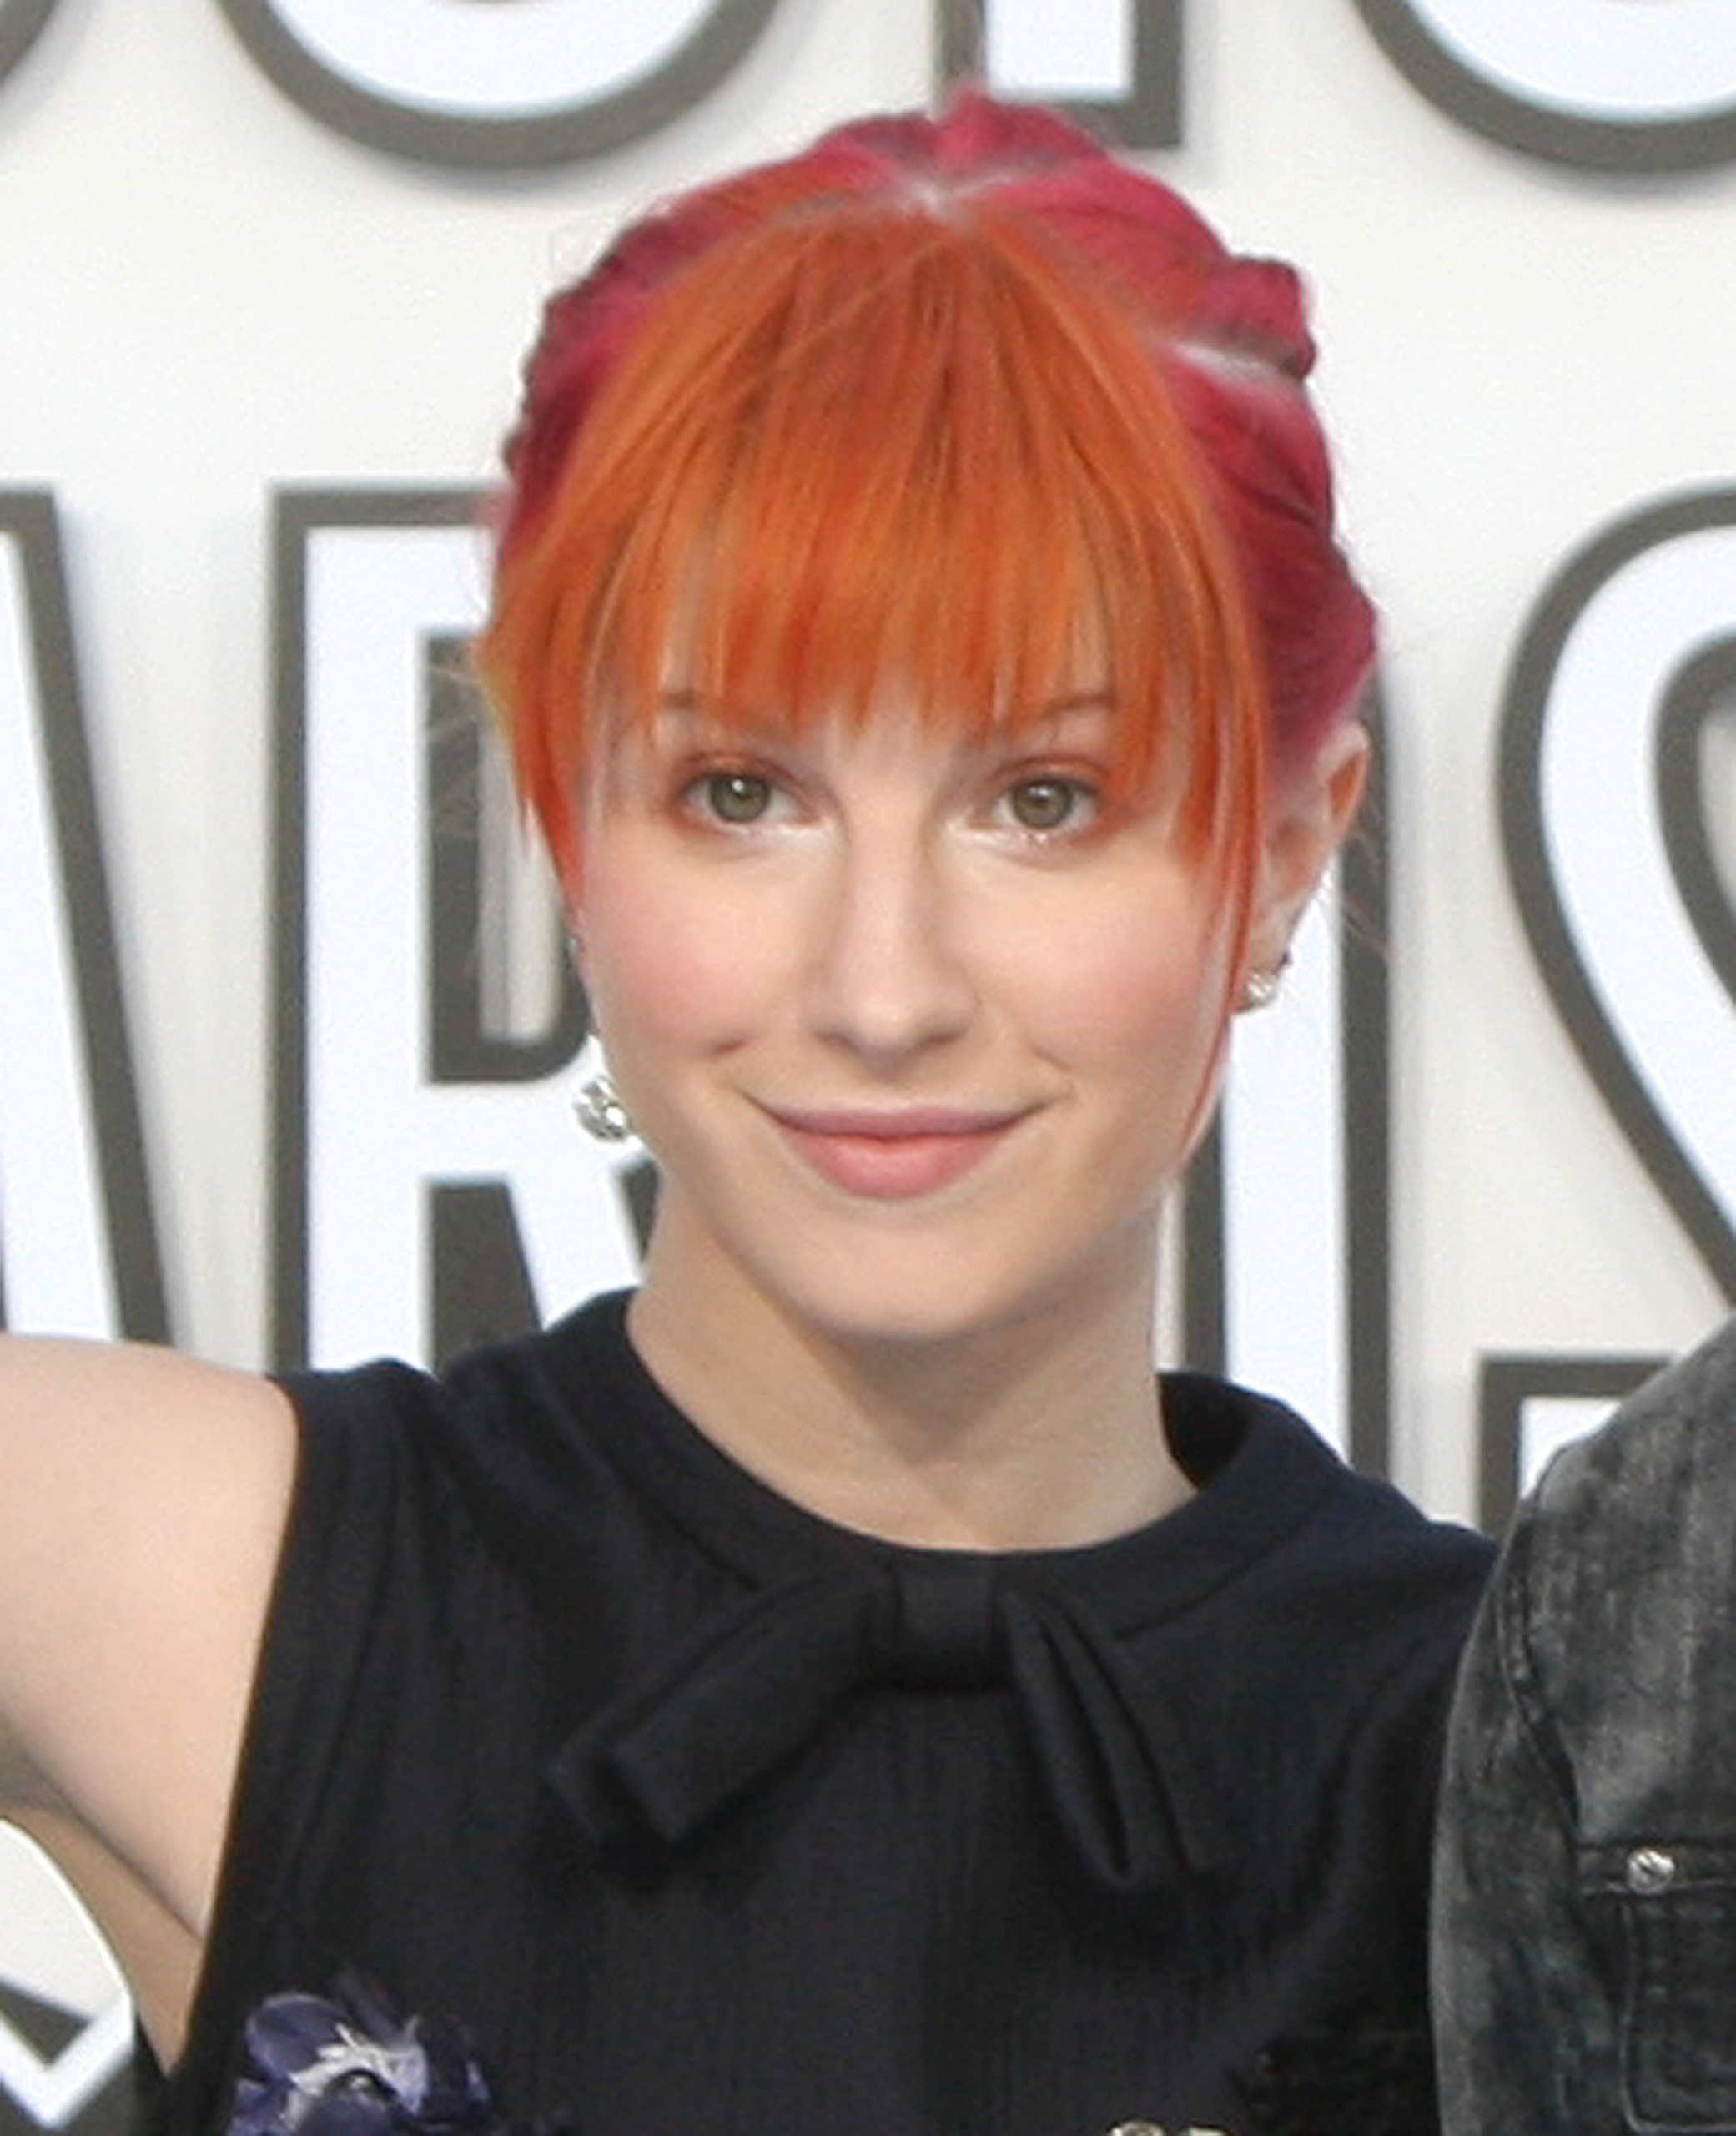 http://images4.fanpop.com/image/photos/15500000/Hayley-at-Video-Music-Awards-2010-paramore-15519217-2081-2560.jpg